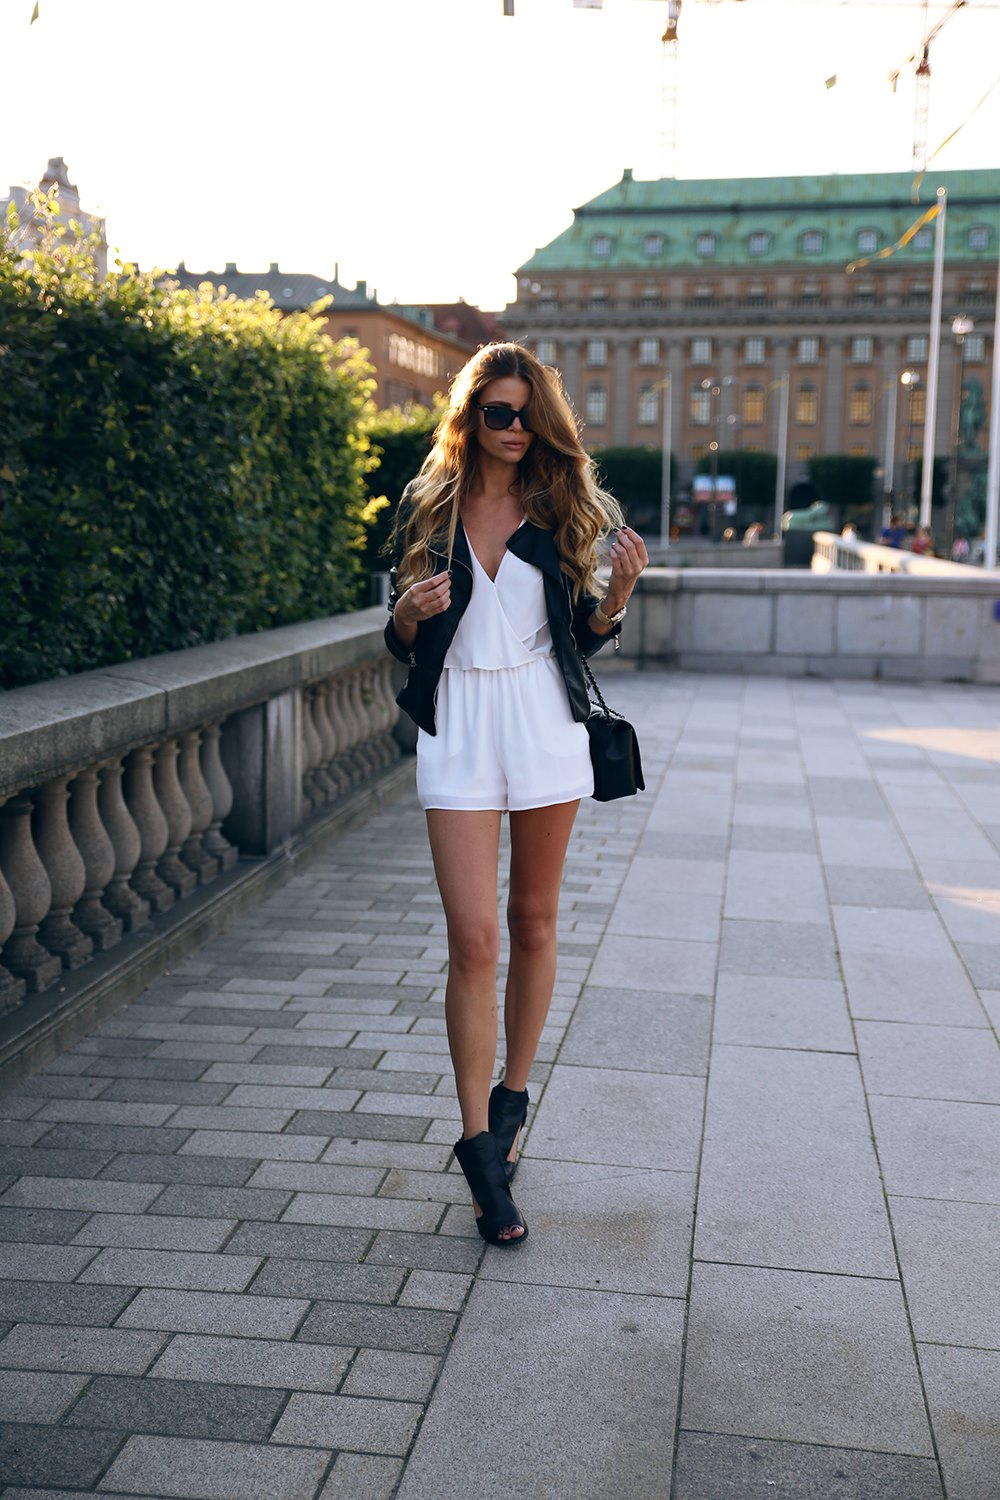 What Shoes To Wear With Playsuit